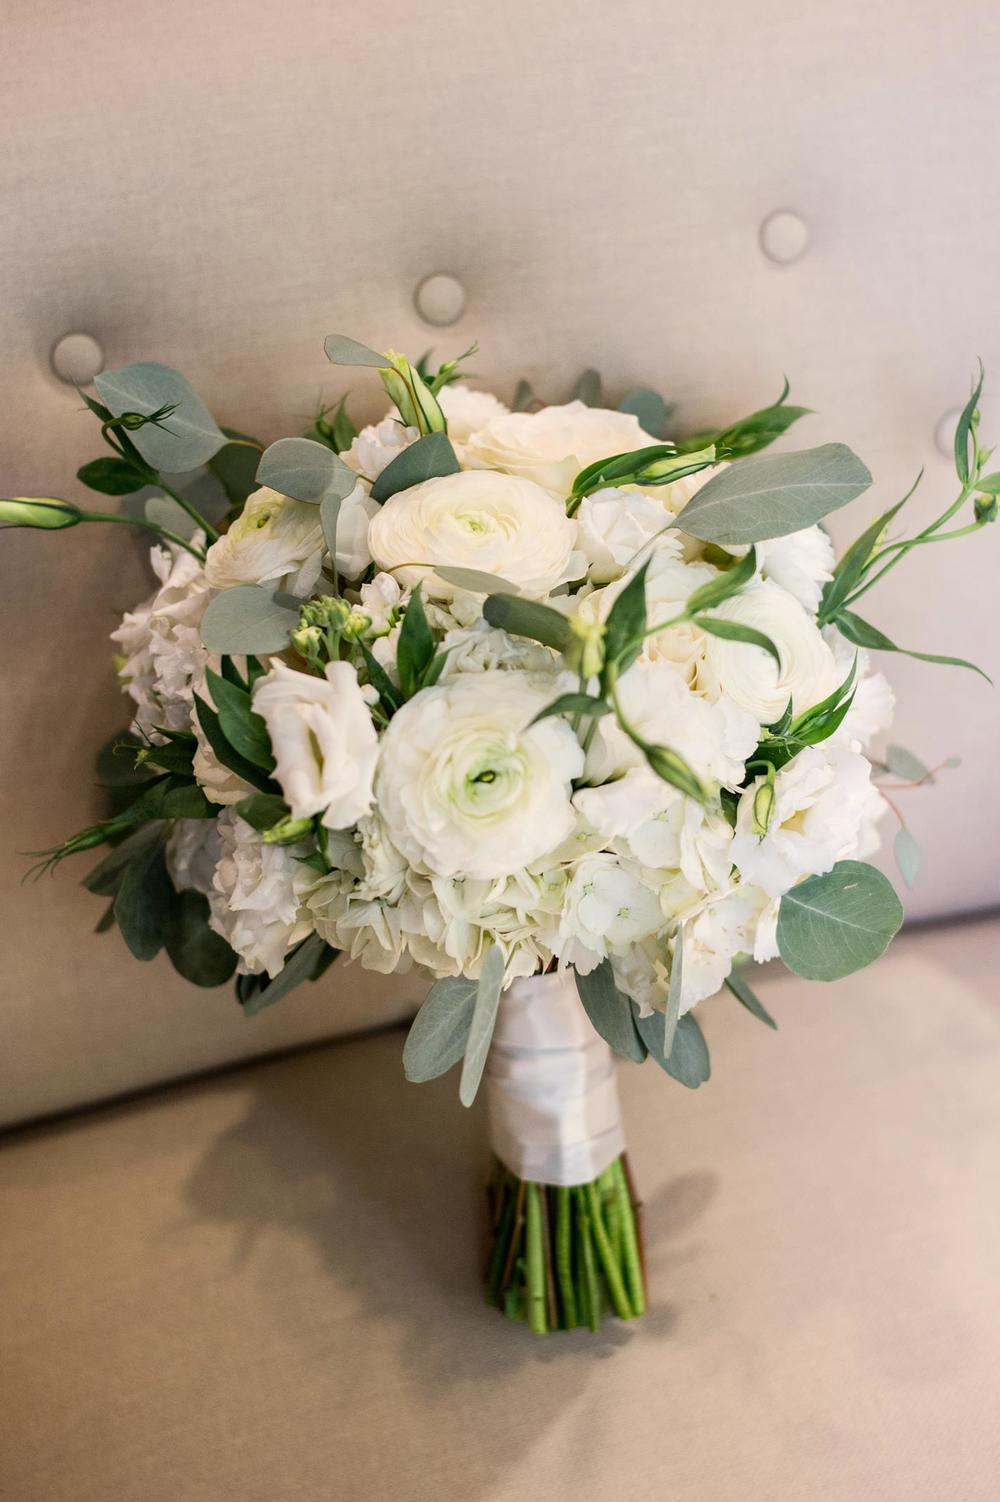 White & green bridal bouquet